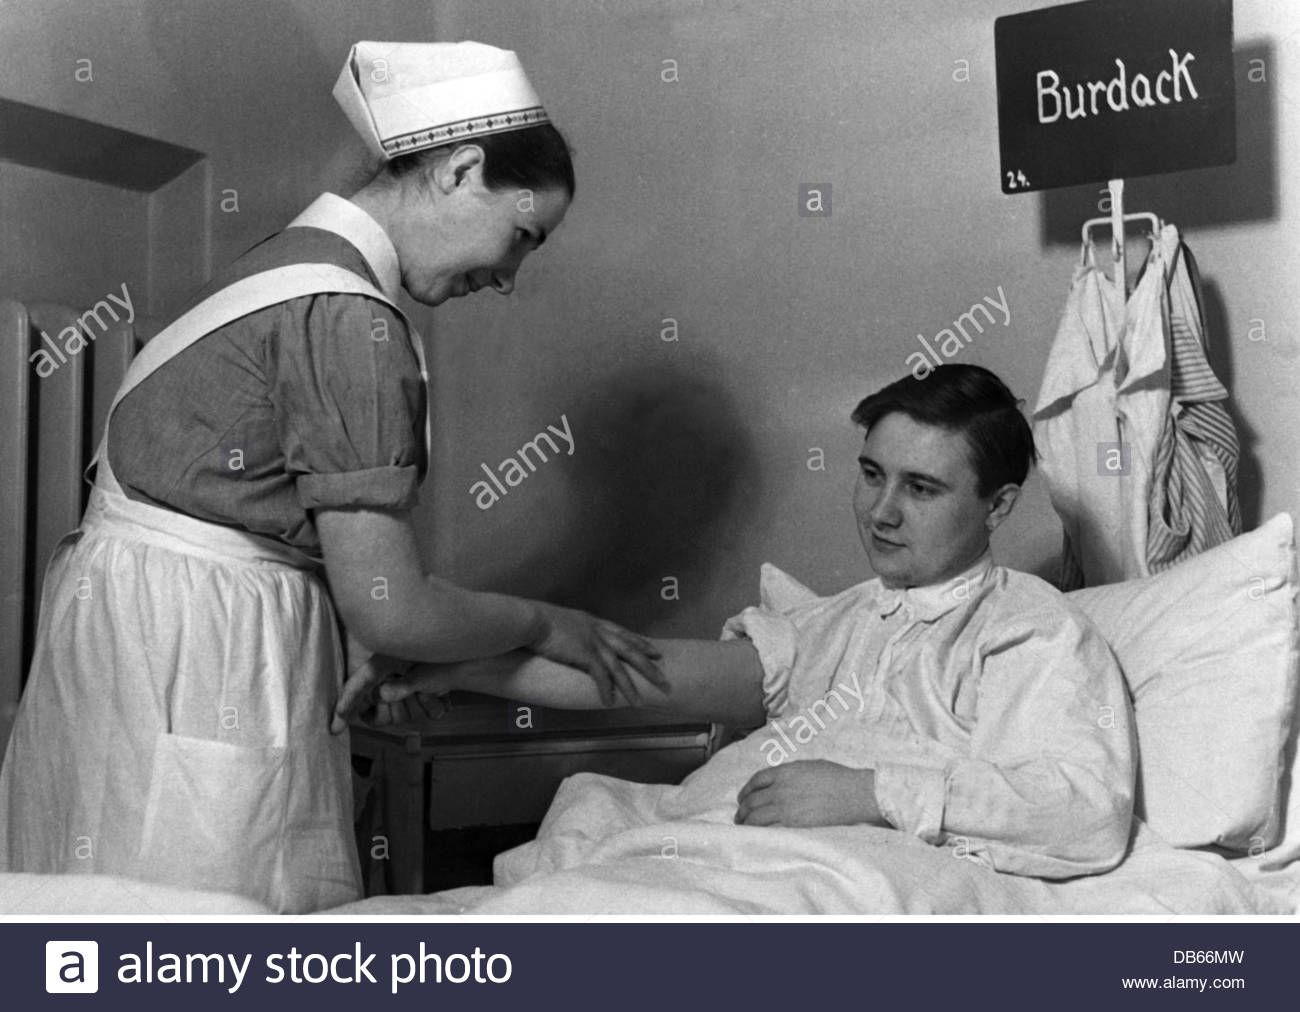 Download this stock image: medicine, hospital, interior, Red Cross nurse keeping a man, Germany, late 1930s, German Red Cross, DRK, people, women, Third Re - DB66MW from Alamy's library of millions of high resolution stock photos, illustrations and vectors.